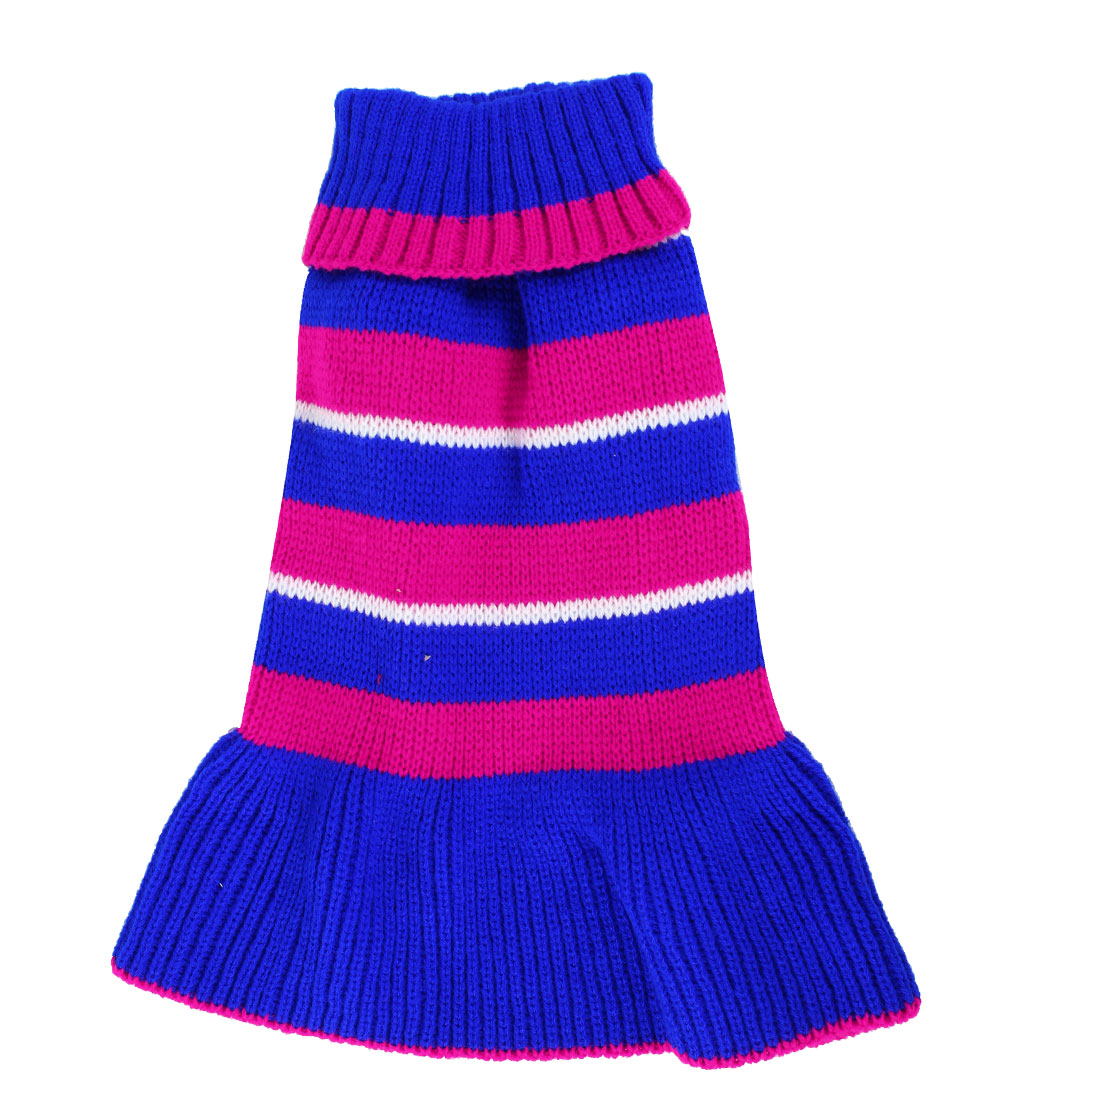 Pet Dog Maltese Fuchsia Blue Stripe Pattern Ribbed Cuff Knitwear Turtleneck Dress Apparel Sweater Size S